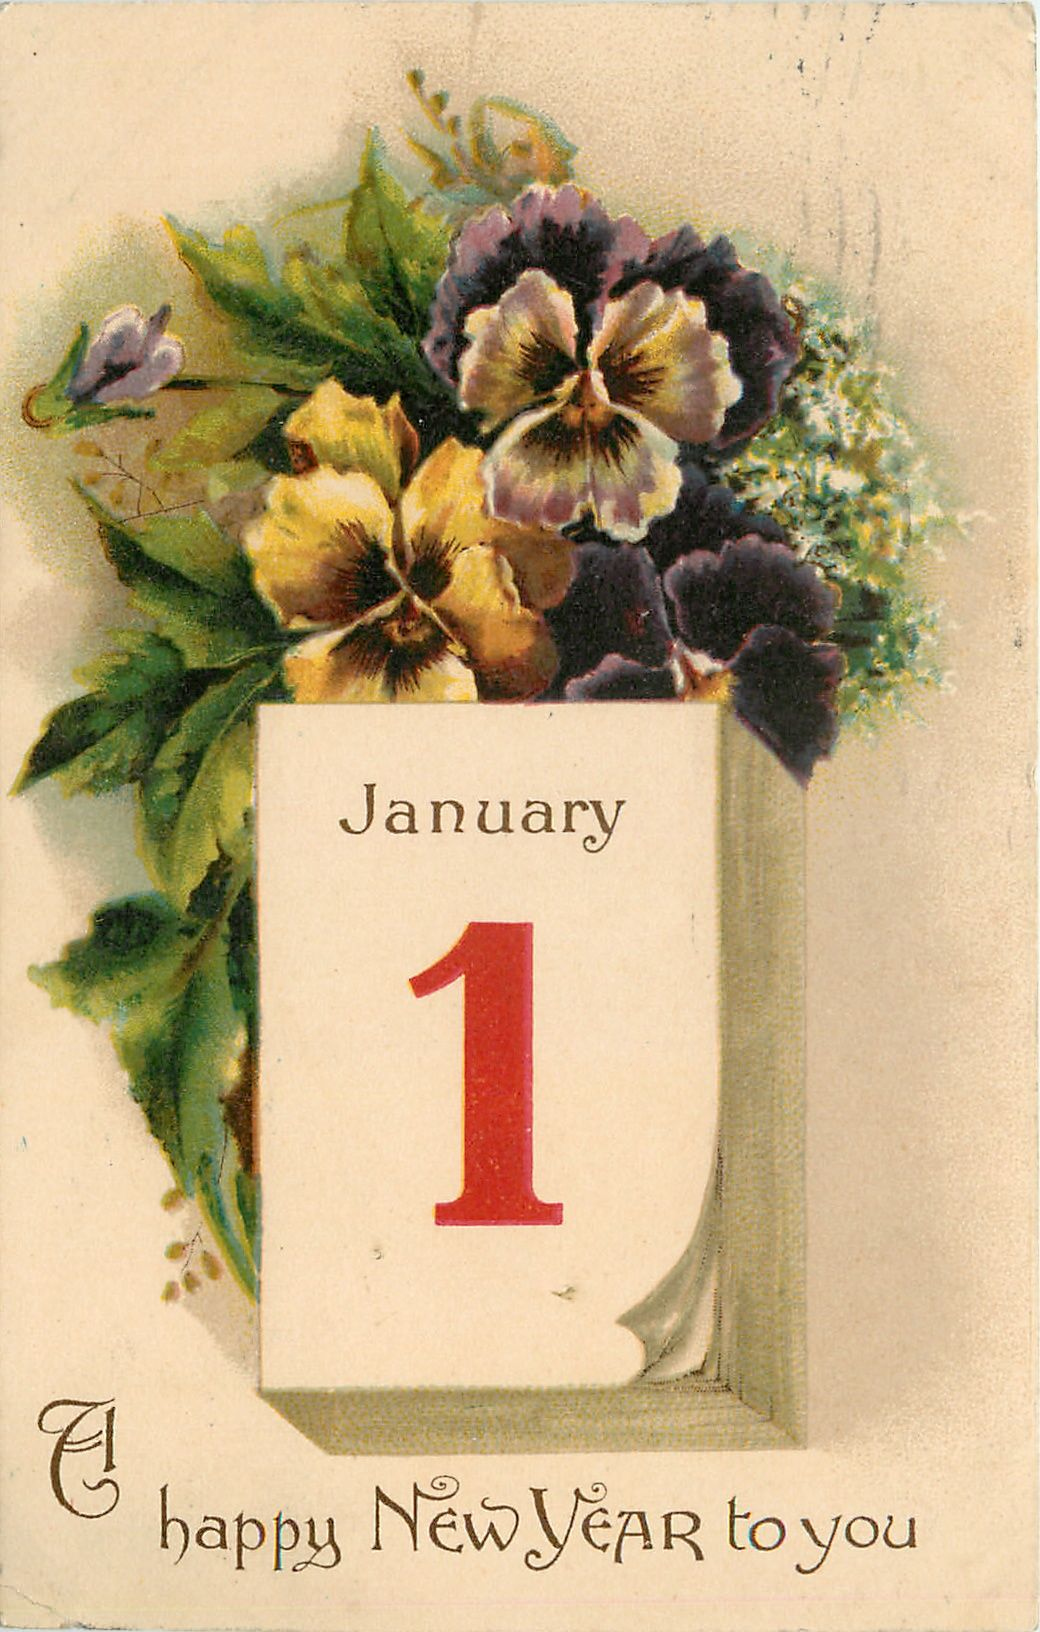 A HAPPY NEW YEAR TO YOU pansies above calendar JANUARY 1 image